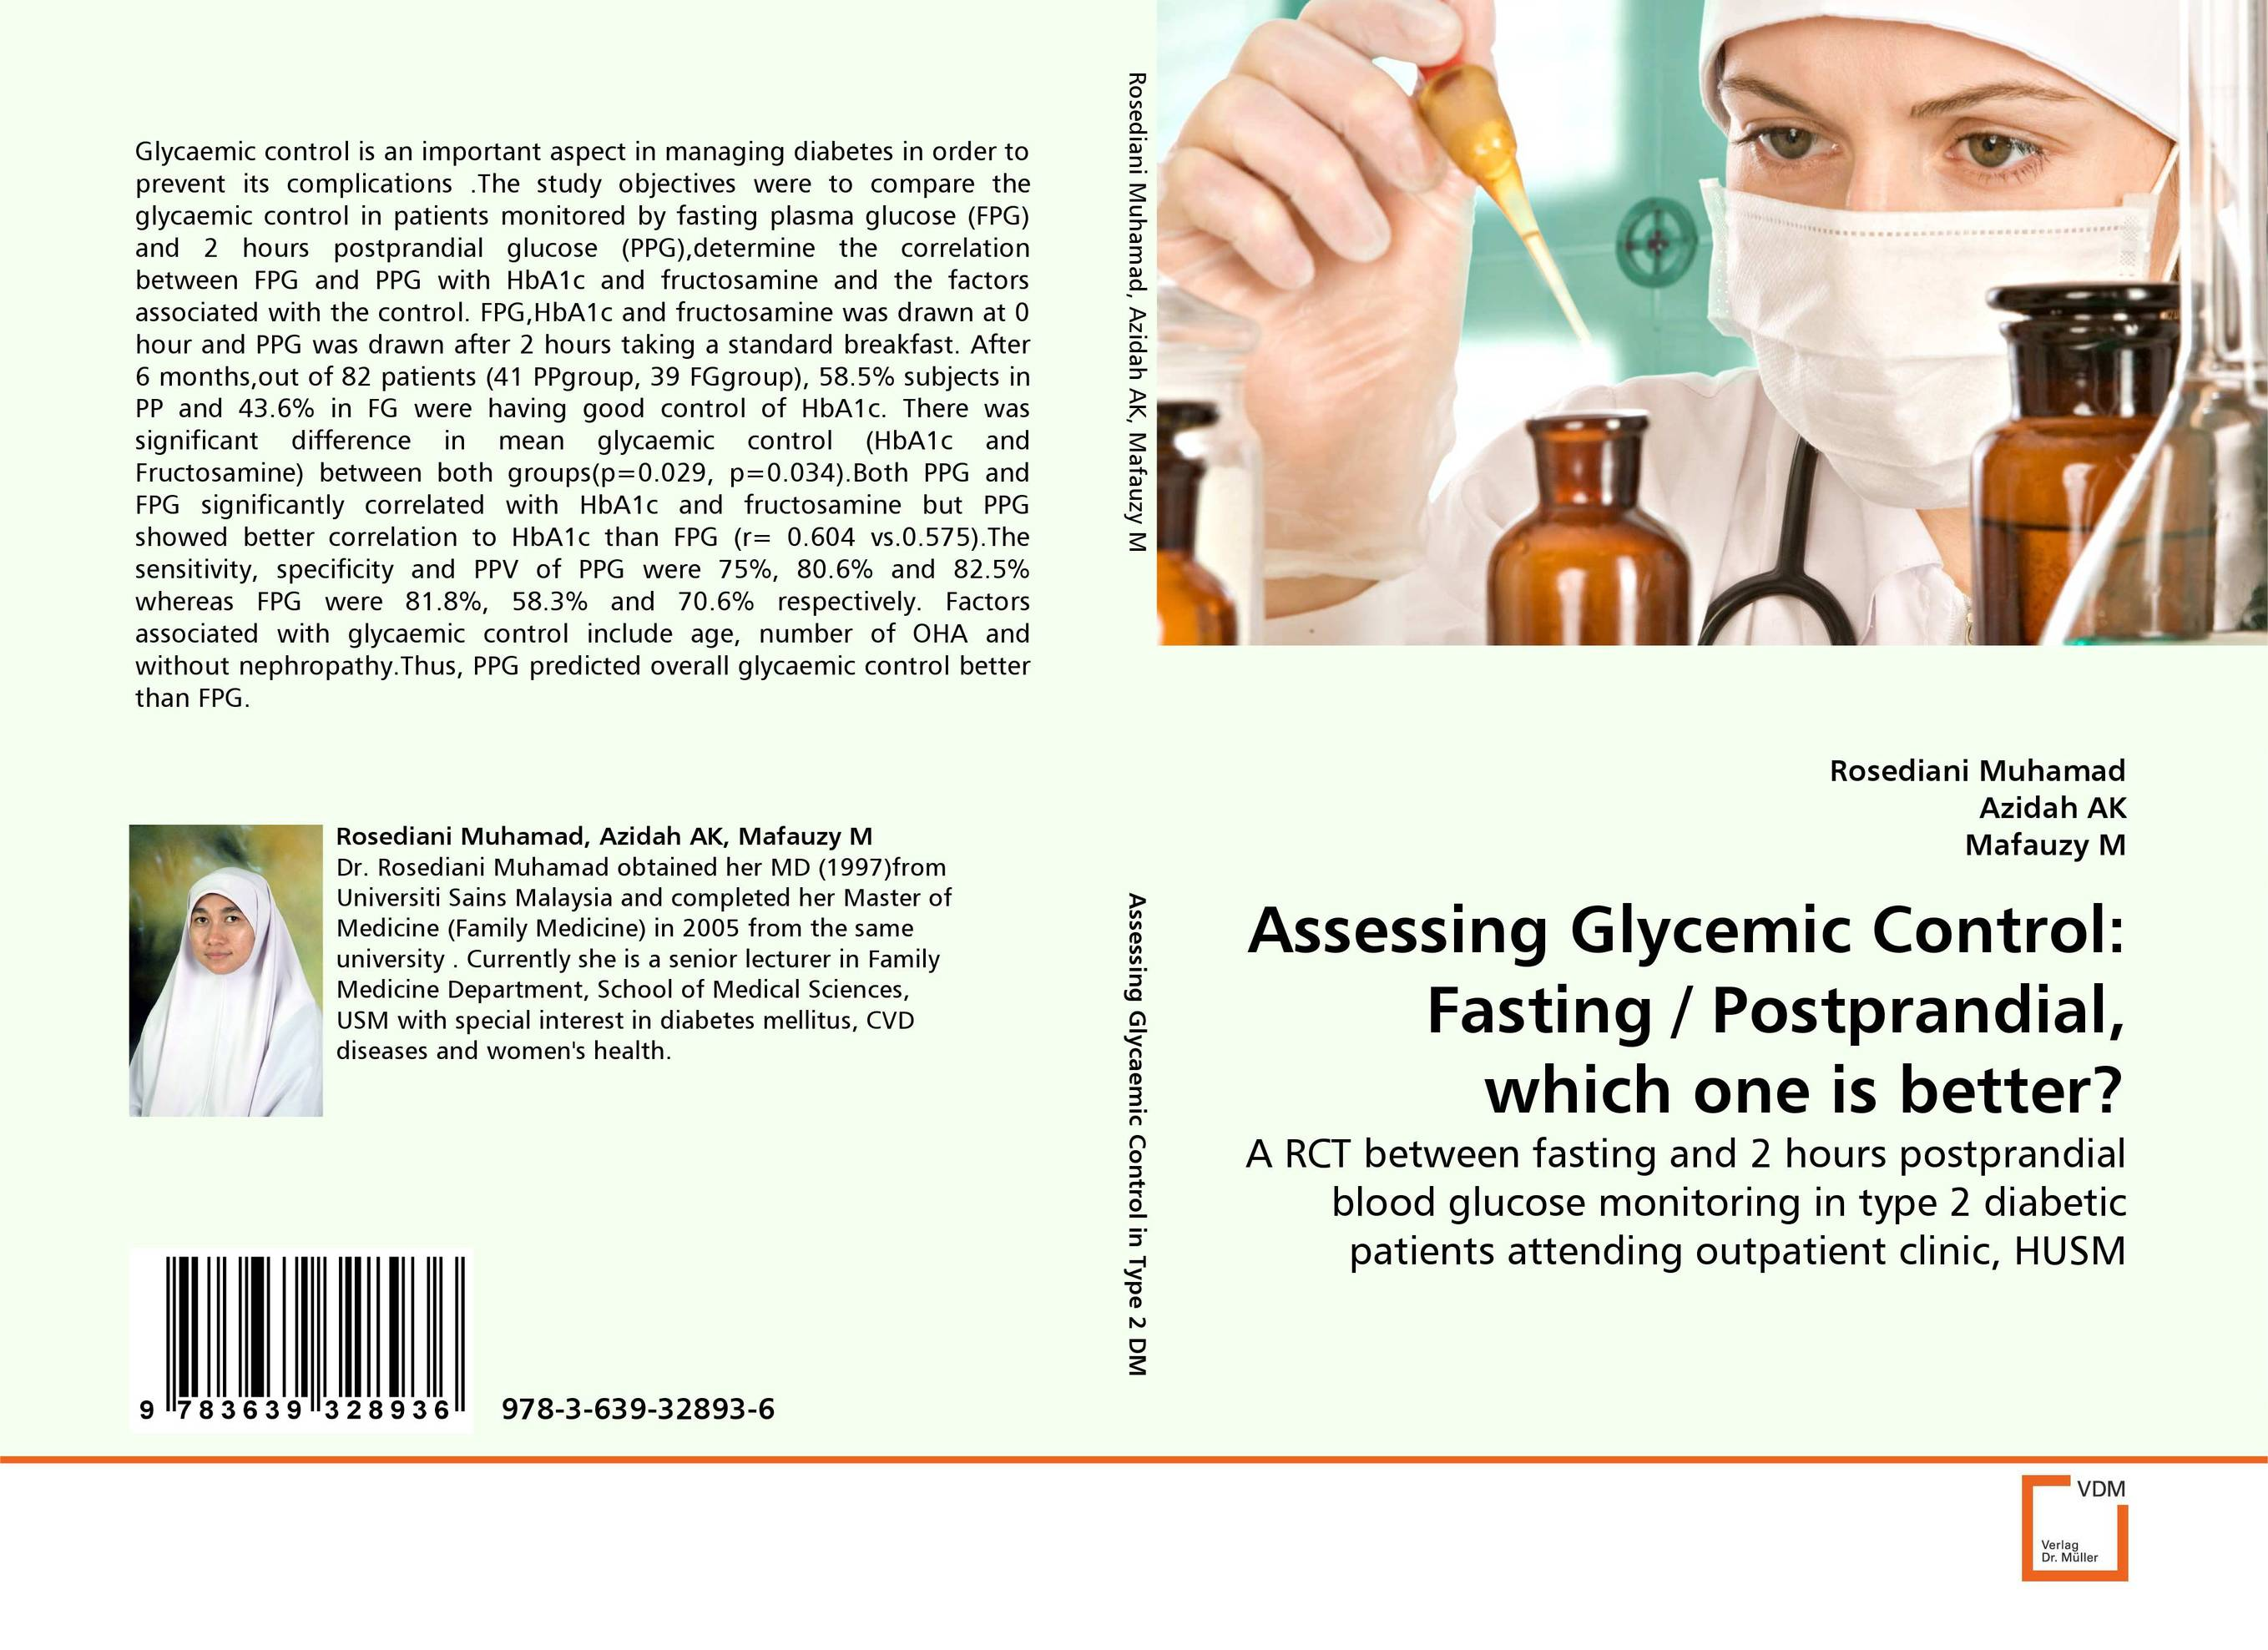 Assessing Glycemic Control: Fasting / Postprandial, which one is better? diabetes and hba1c an indian perspective